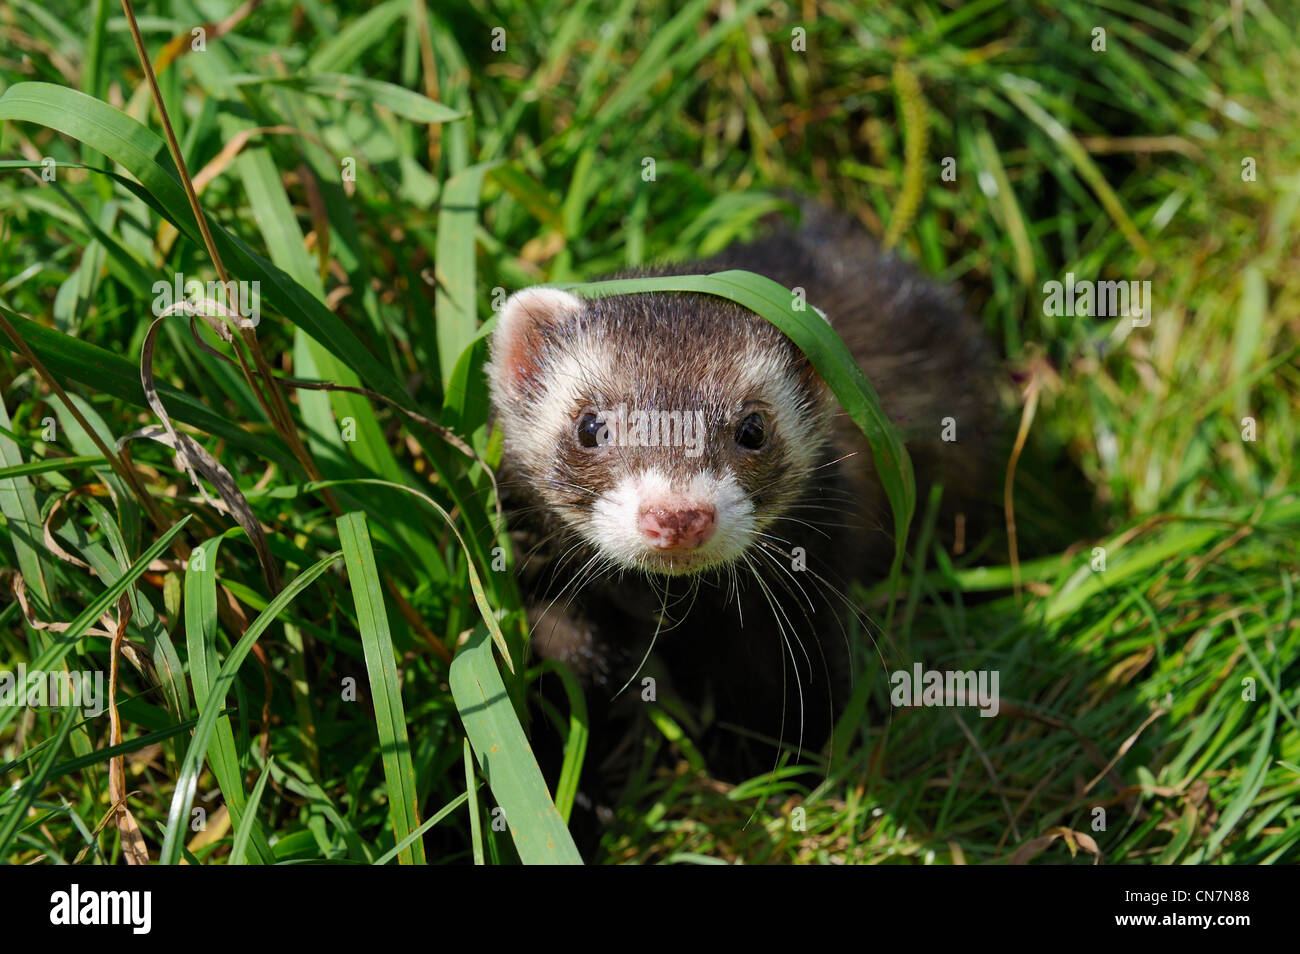 France, Paris, Bois de Boulogne, le furet domestique (Mustela putorius furo) Photo Stock